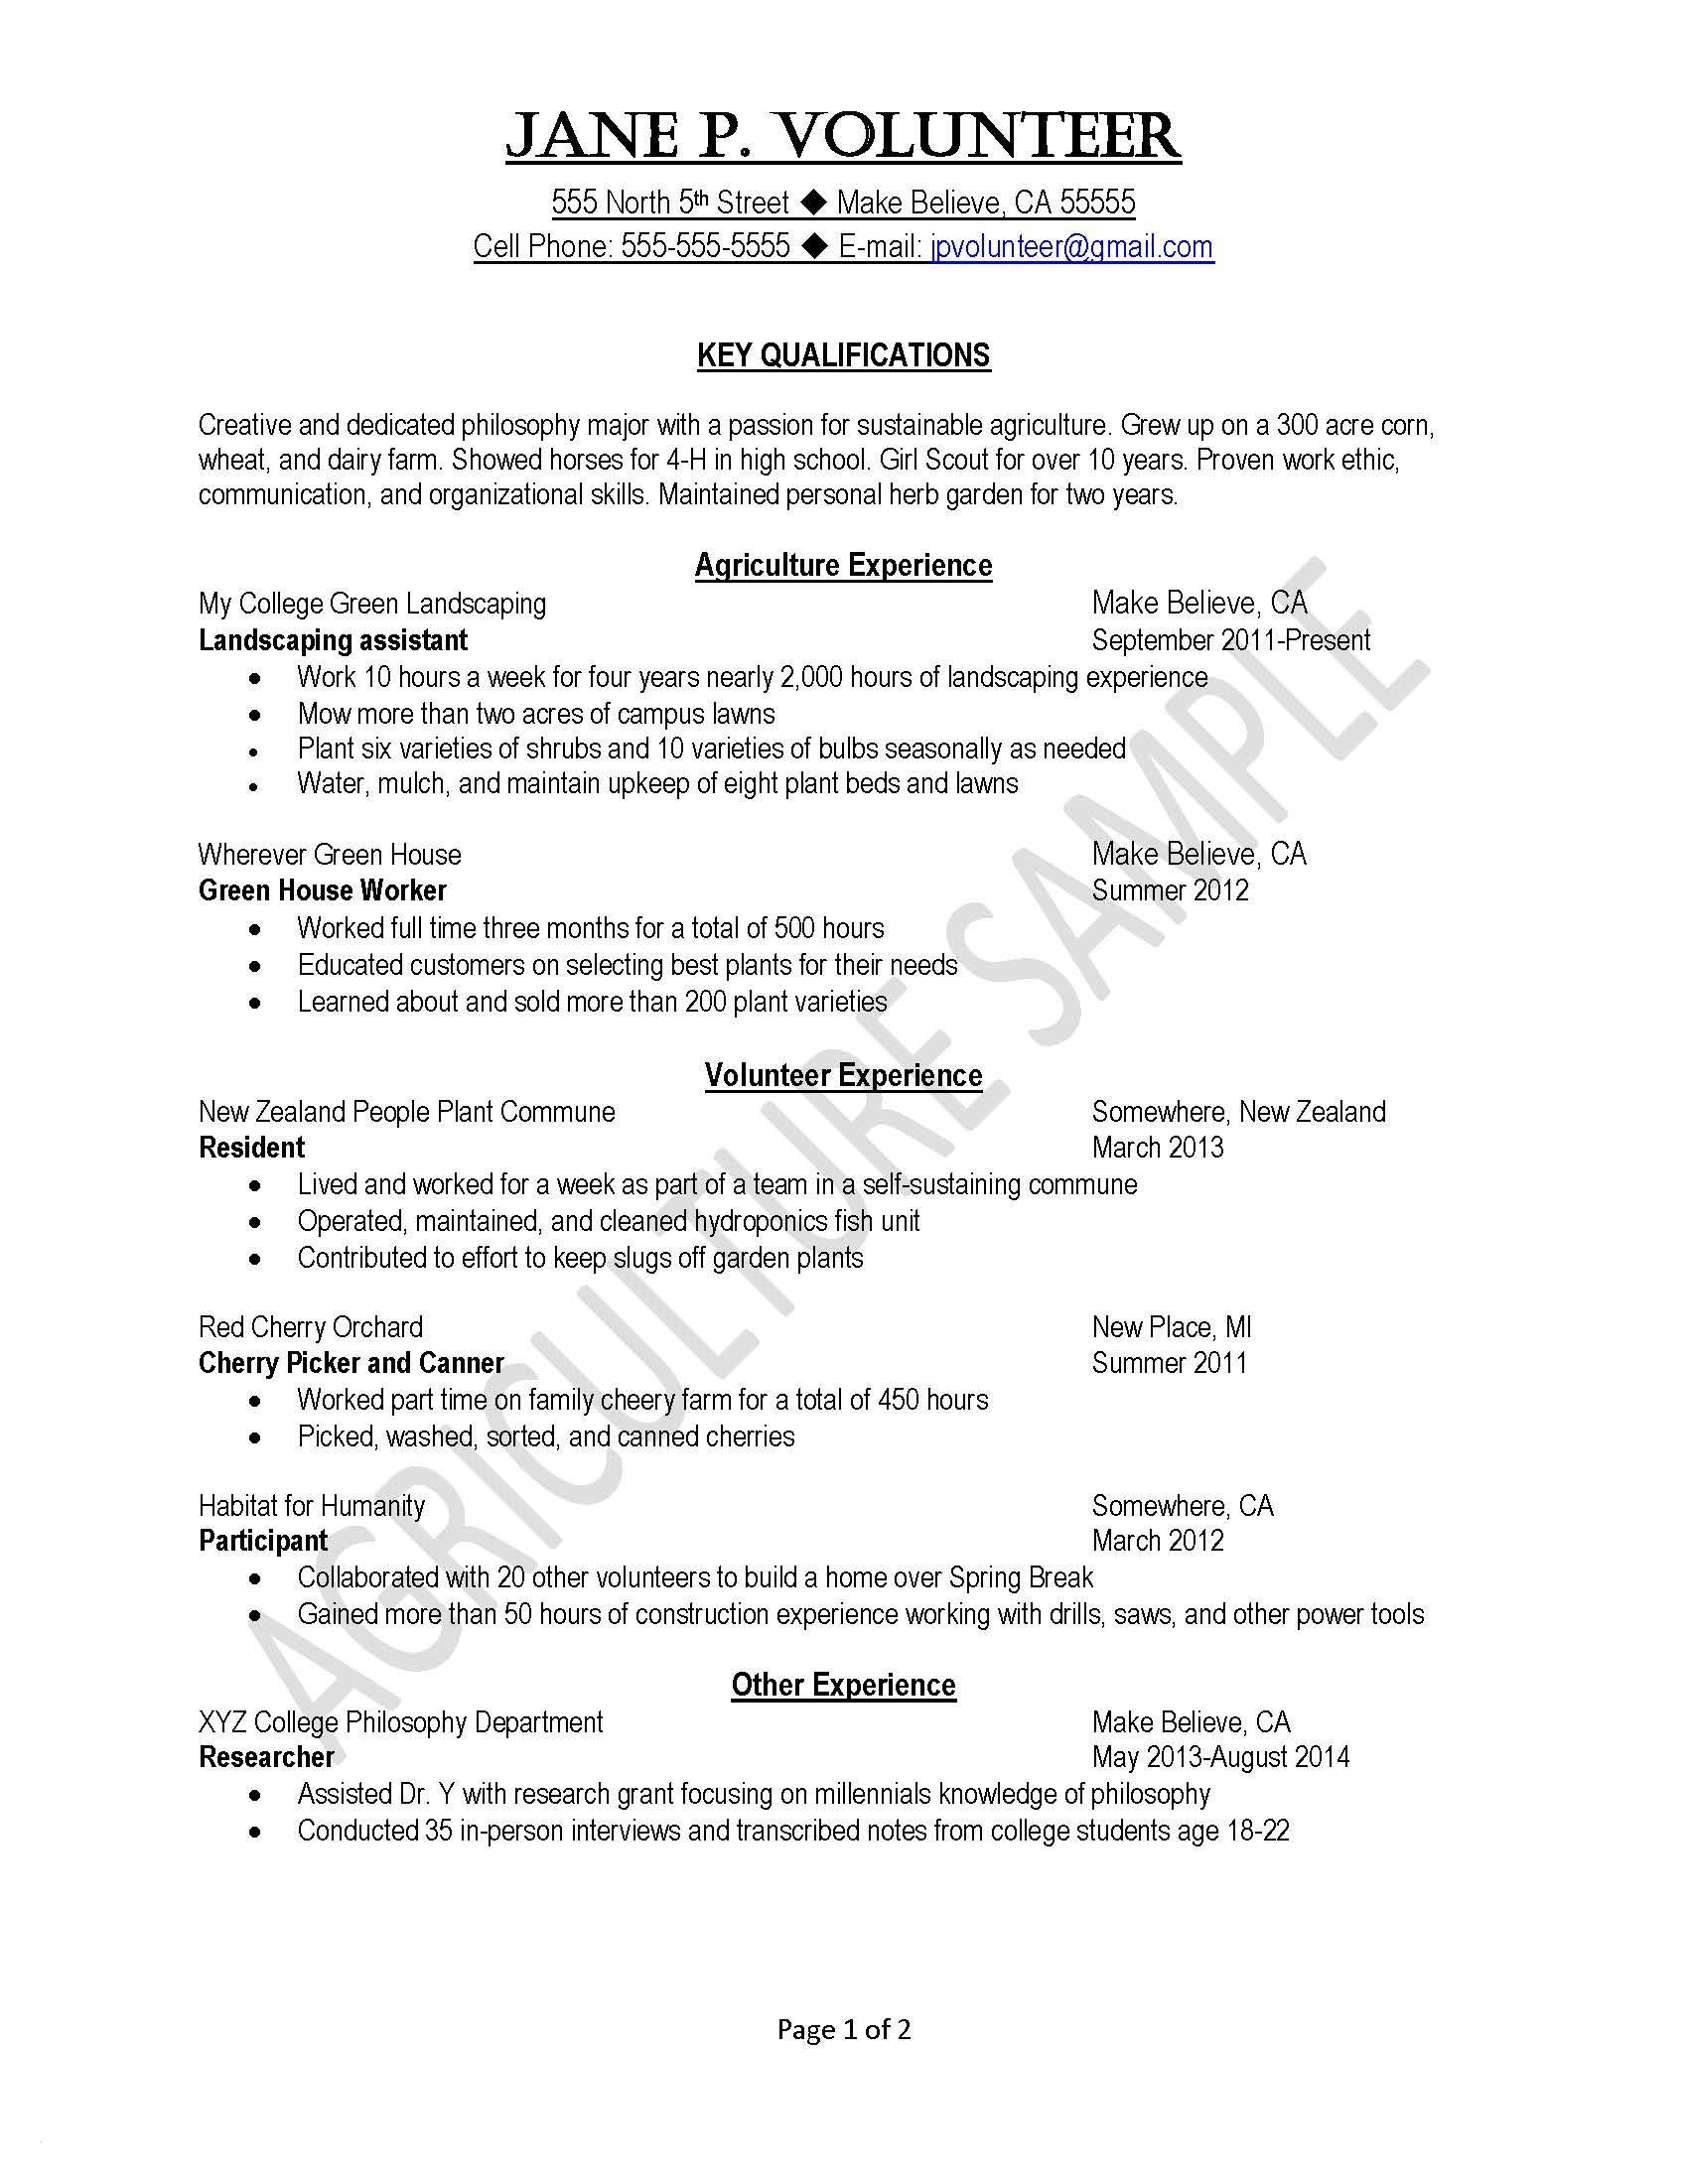 College Application Resume Template Free - Resume Templates for College Applications Awesome Awesome Sample